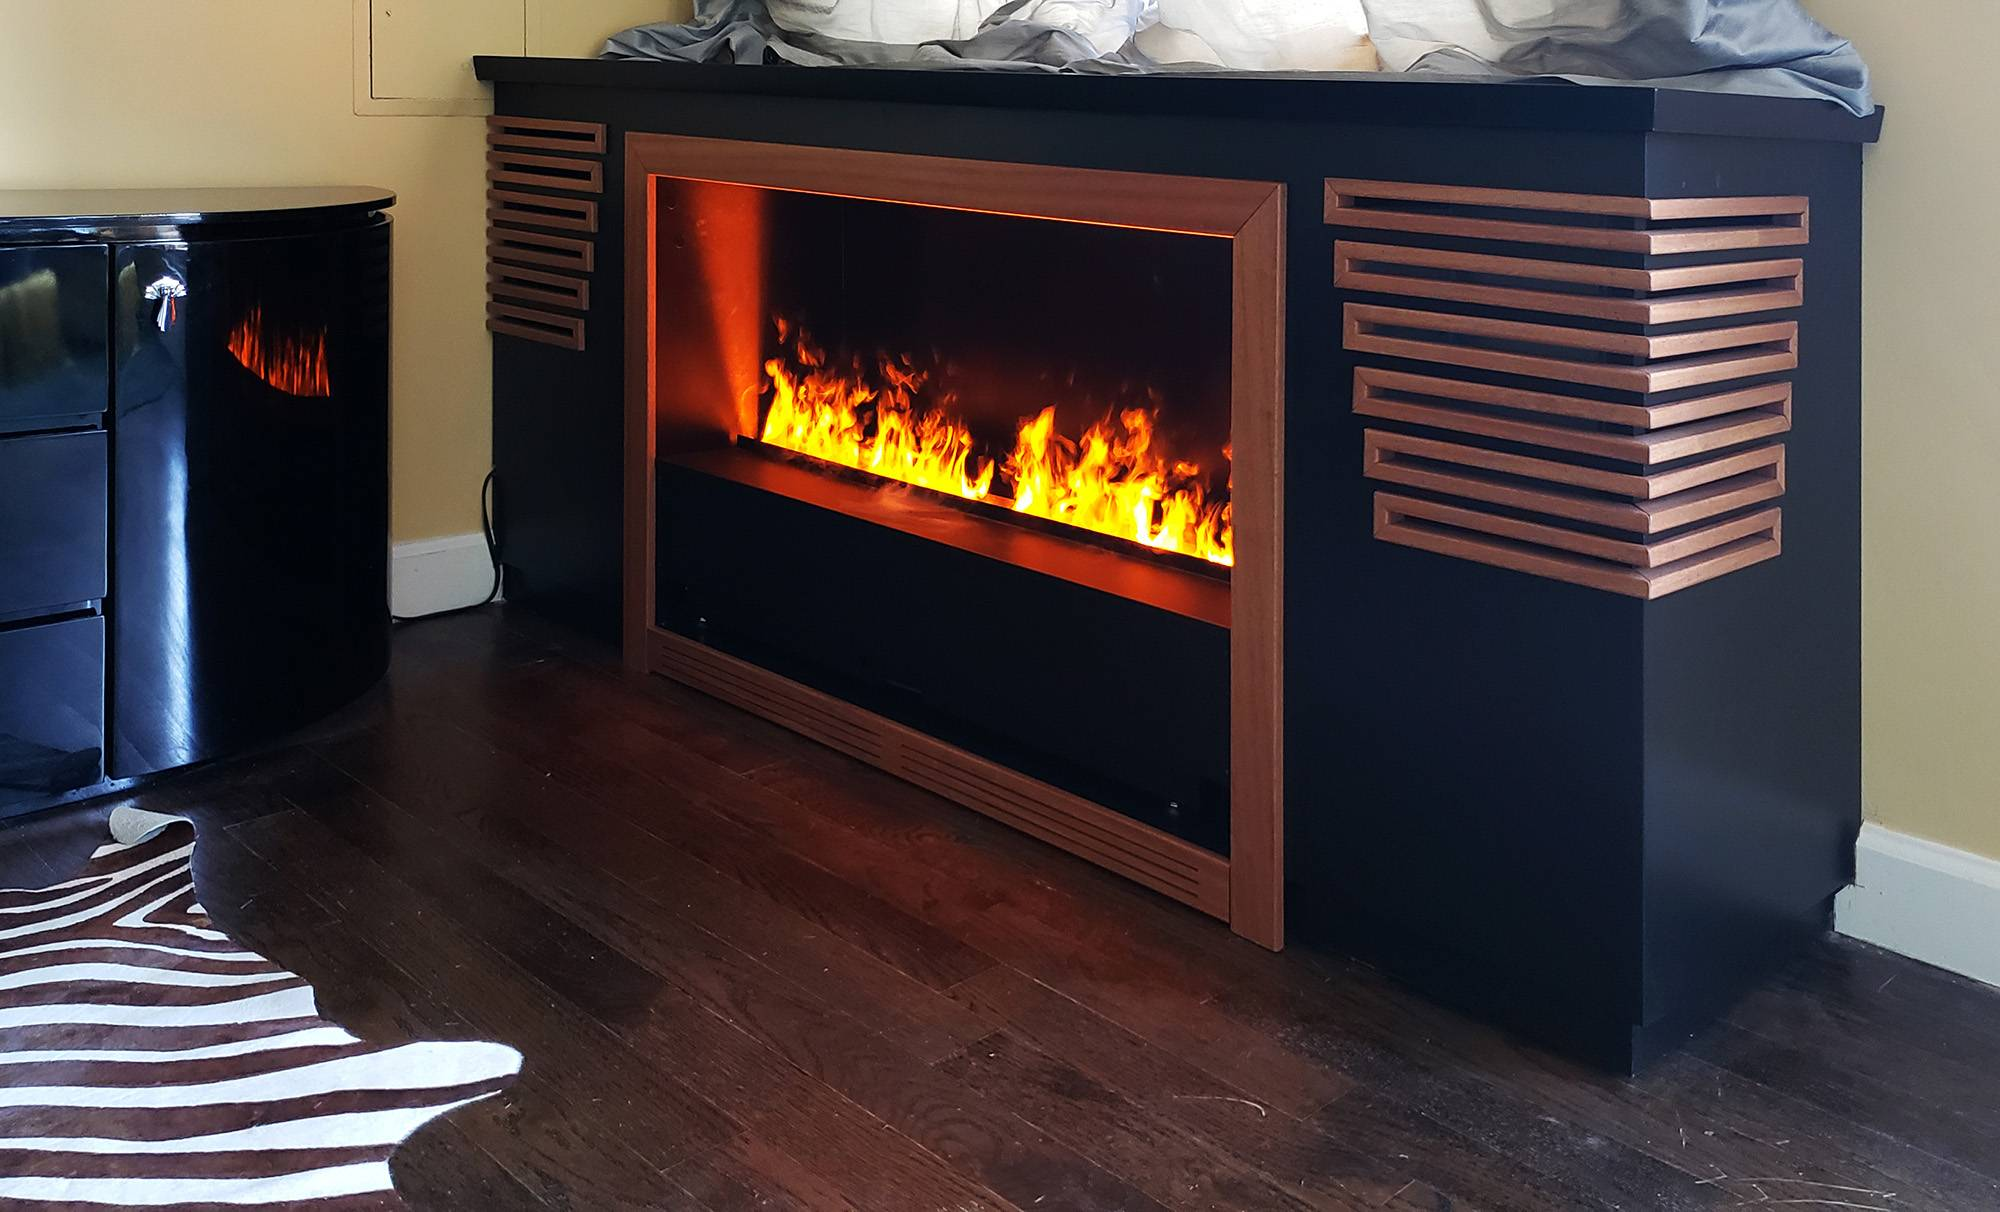 Fireplace & Radiator Enclosure